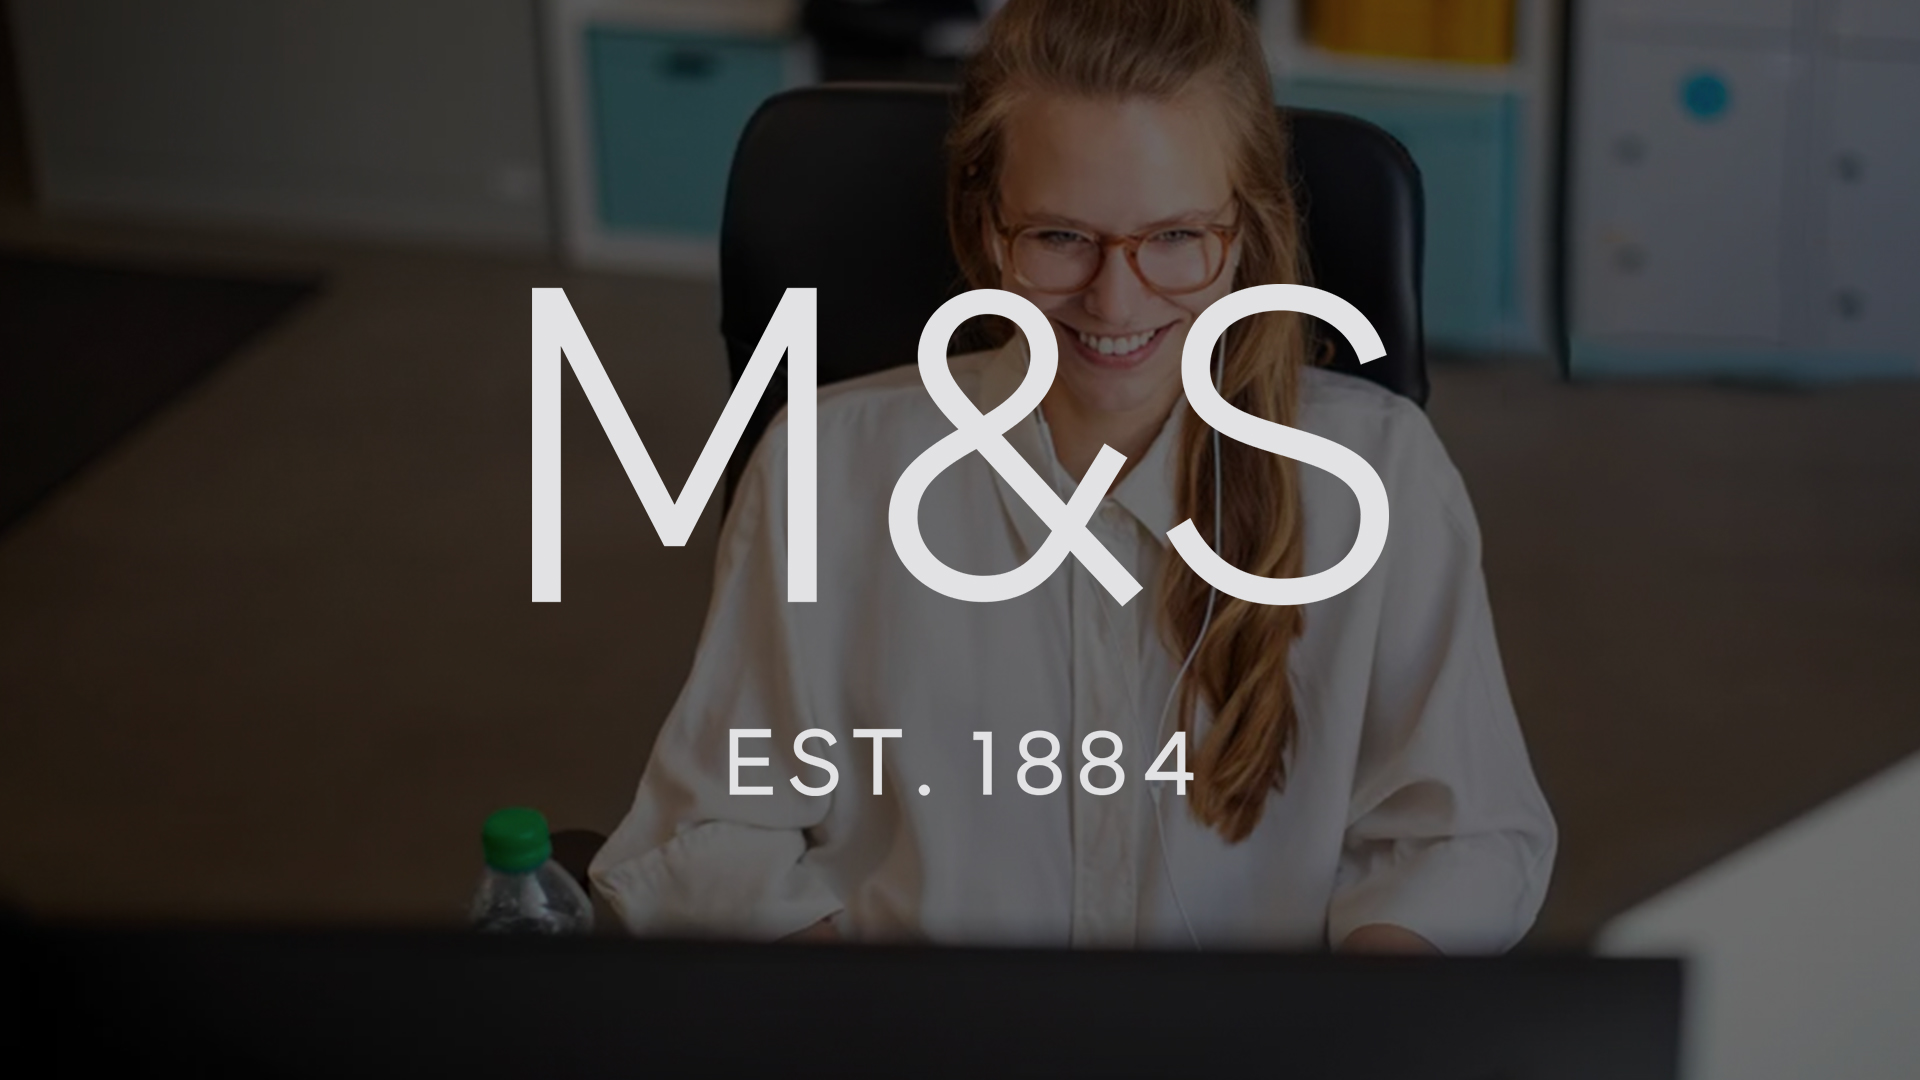 Future-Talent-Learning-case-study-M&S-2